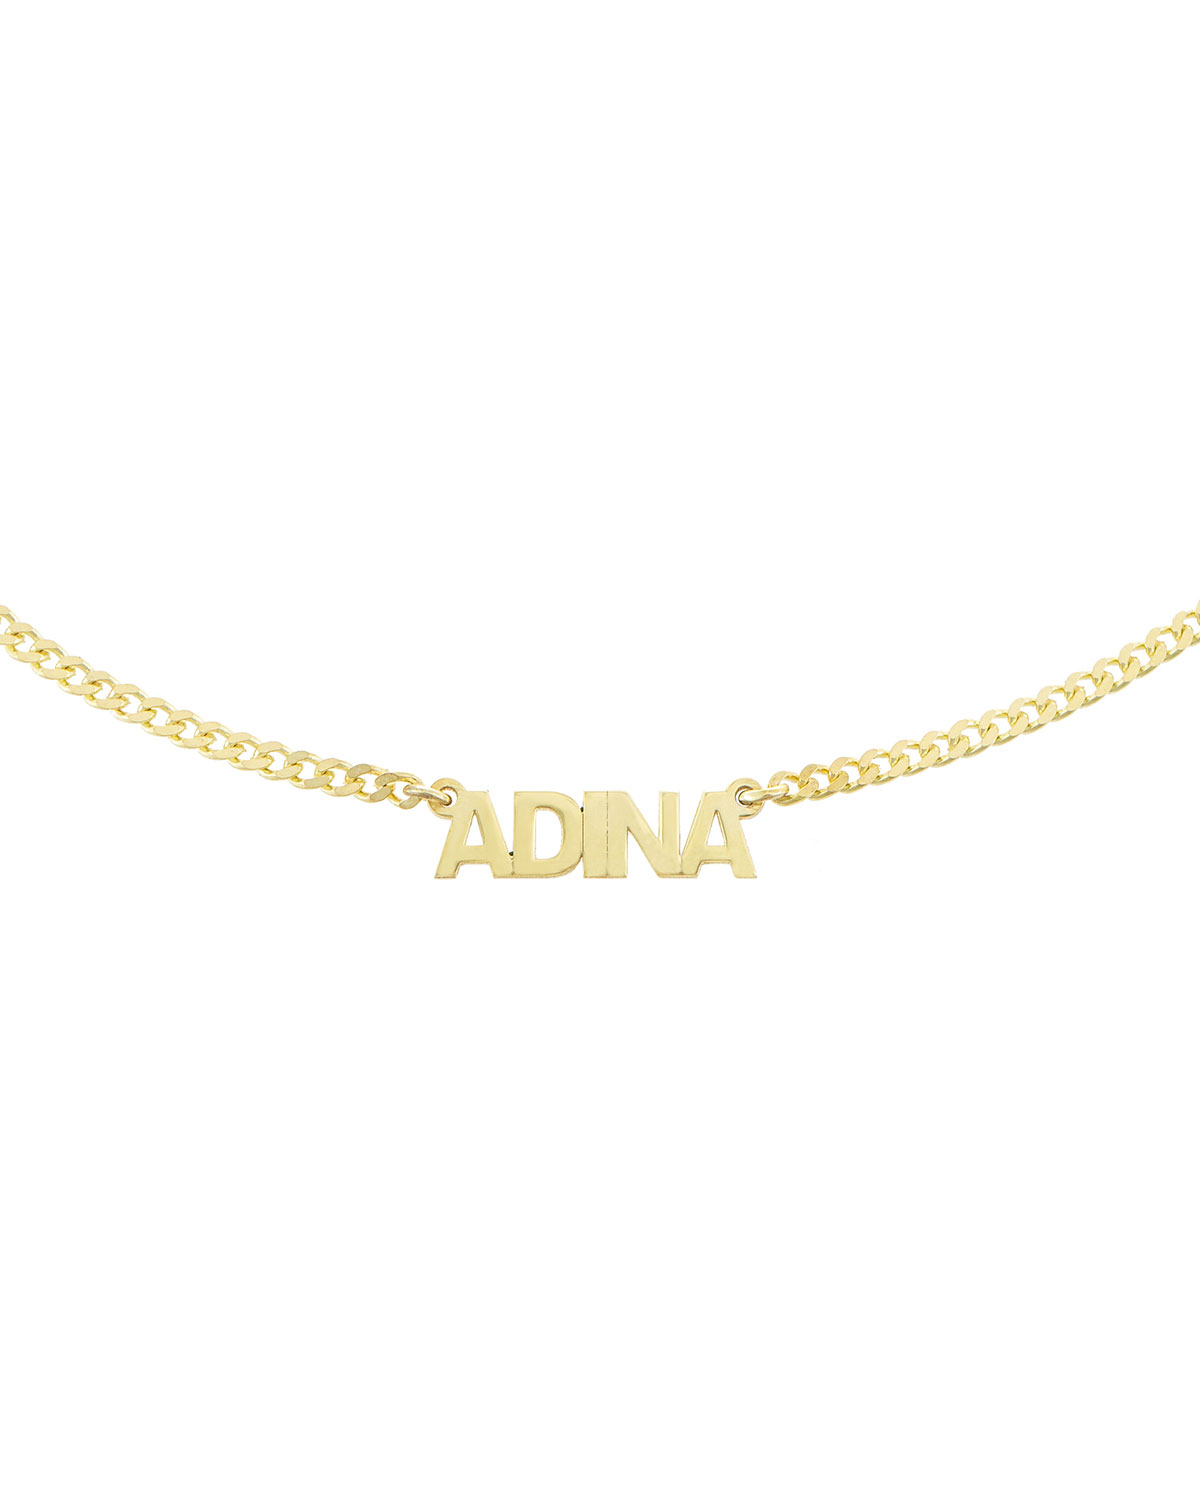 Personalized Mini Nameplate Chain Choker Necklace in Gold Vermeil